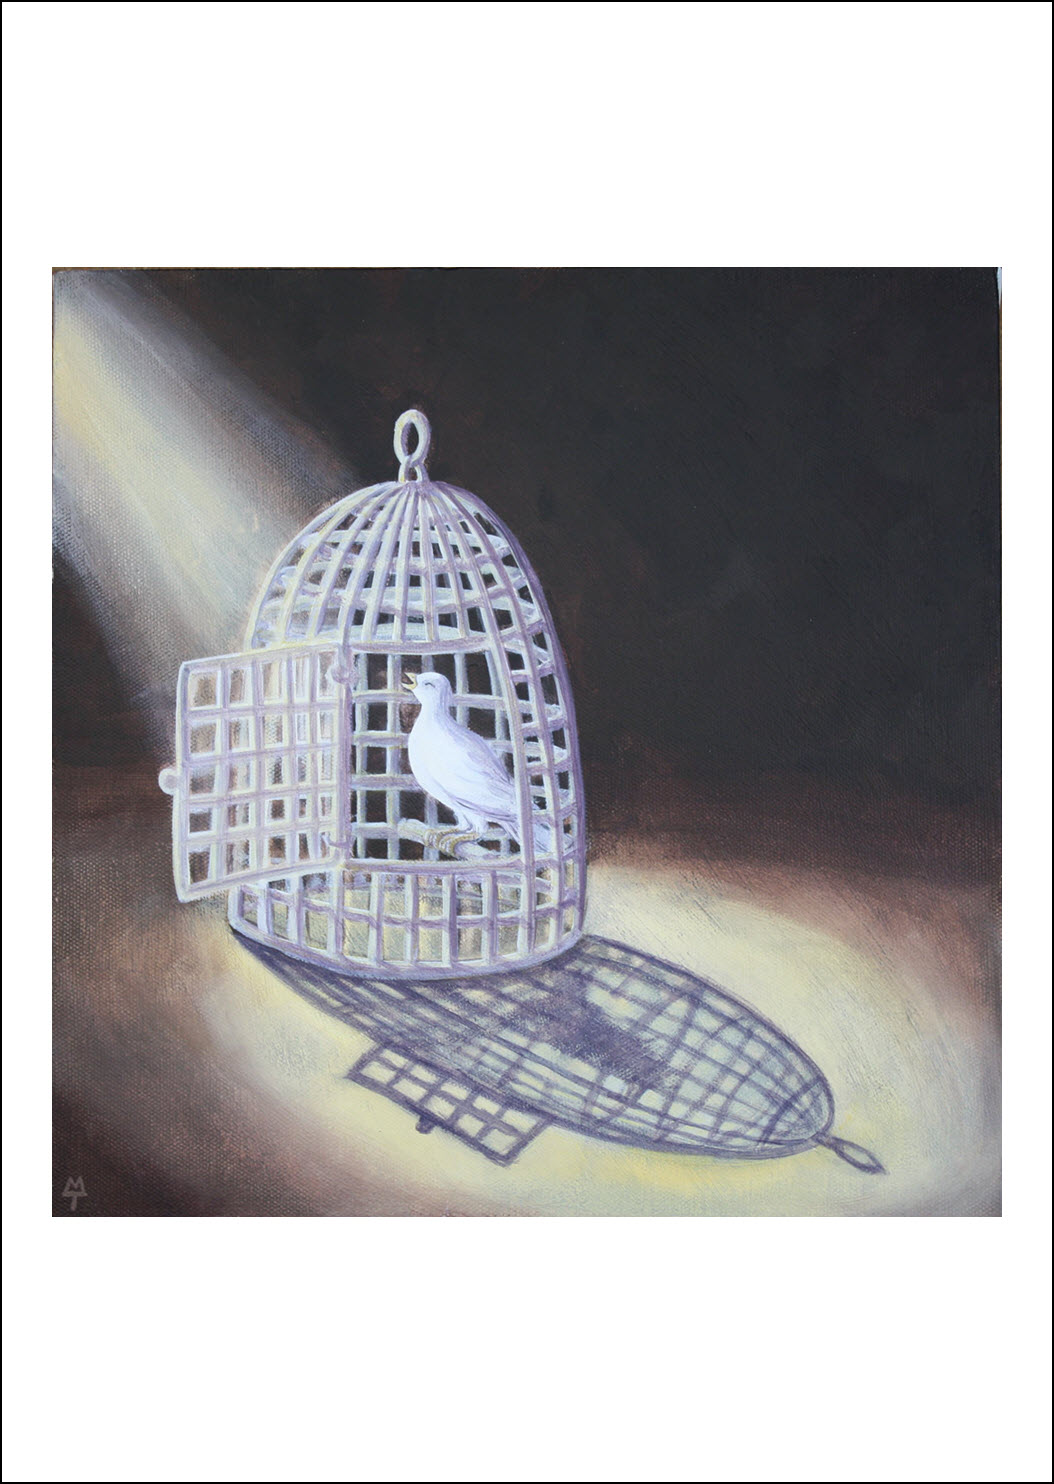 """37. Freedom   Many see having faith in God as a trap; a loss of freedom. But I can leave any time, the door is open! This """"cage"""" offers safety, security and hope, In God's safe place I can sing!"""